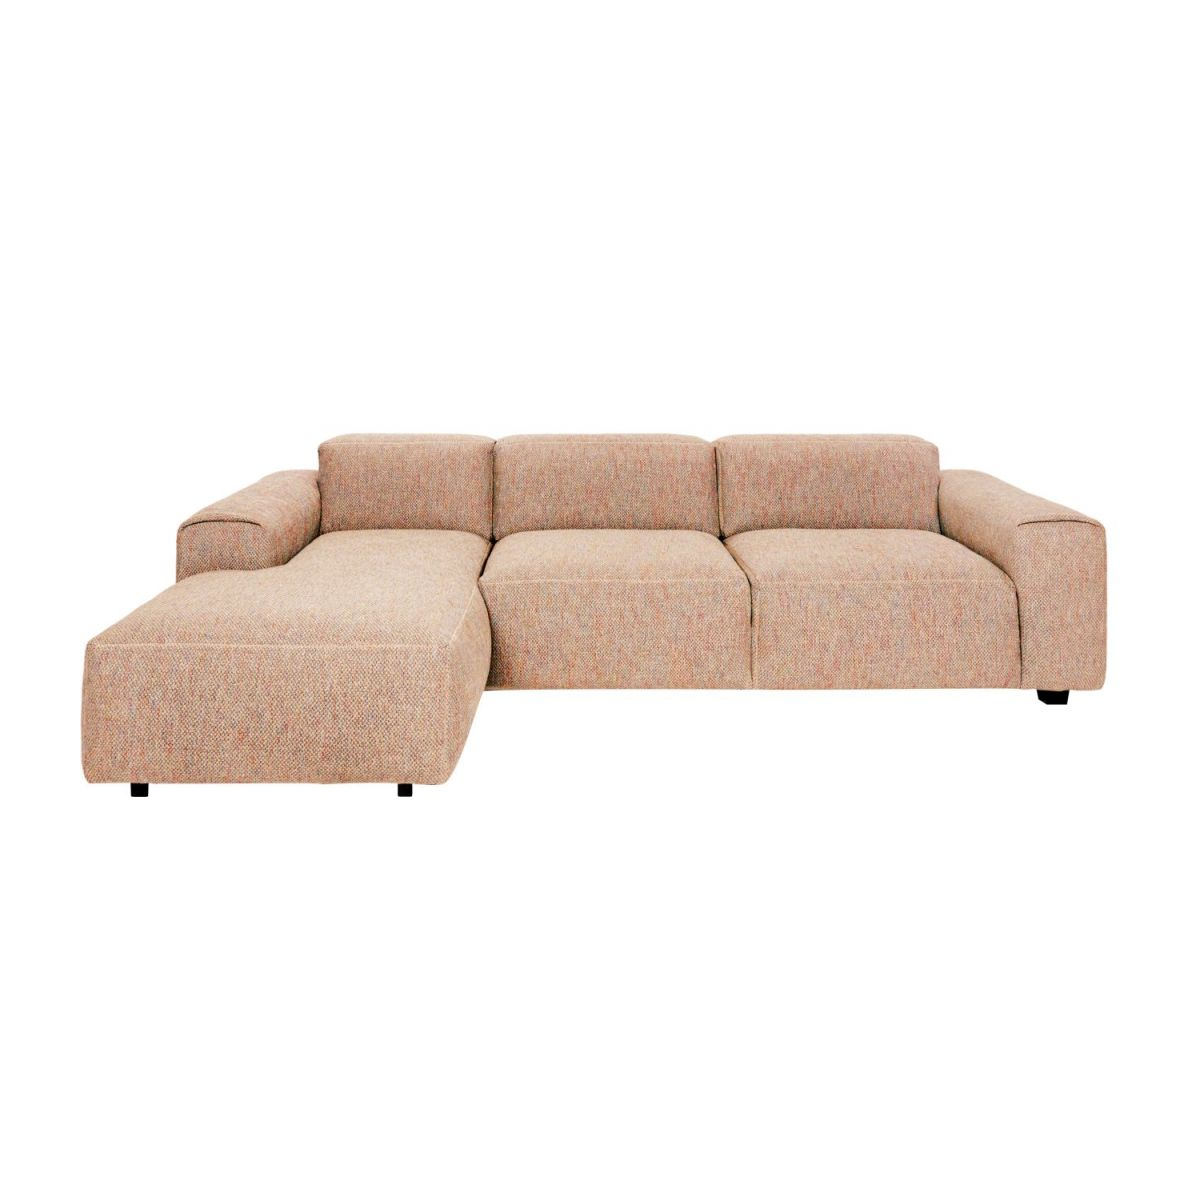 3 seater sofa with left chaise longue in Bellagio fabric, passion orange n°2